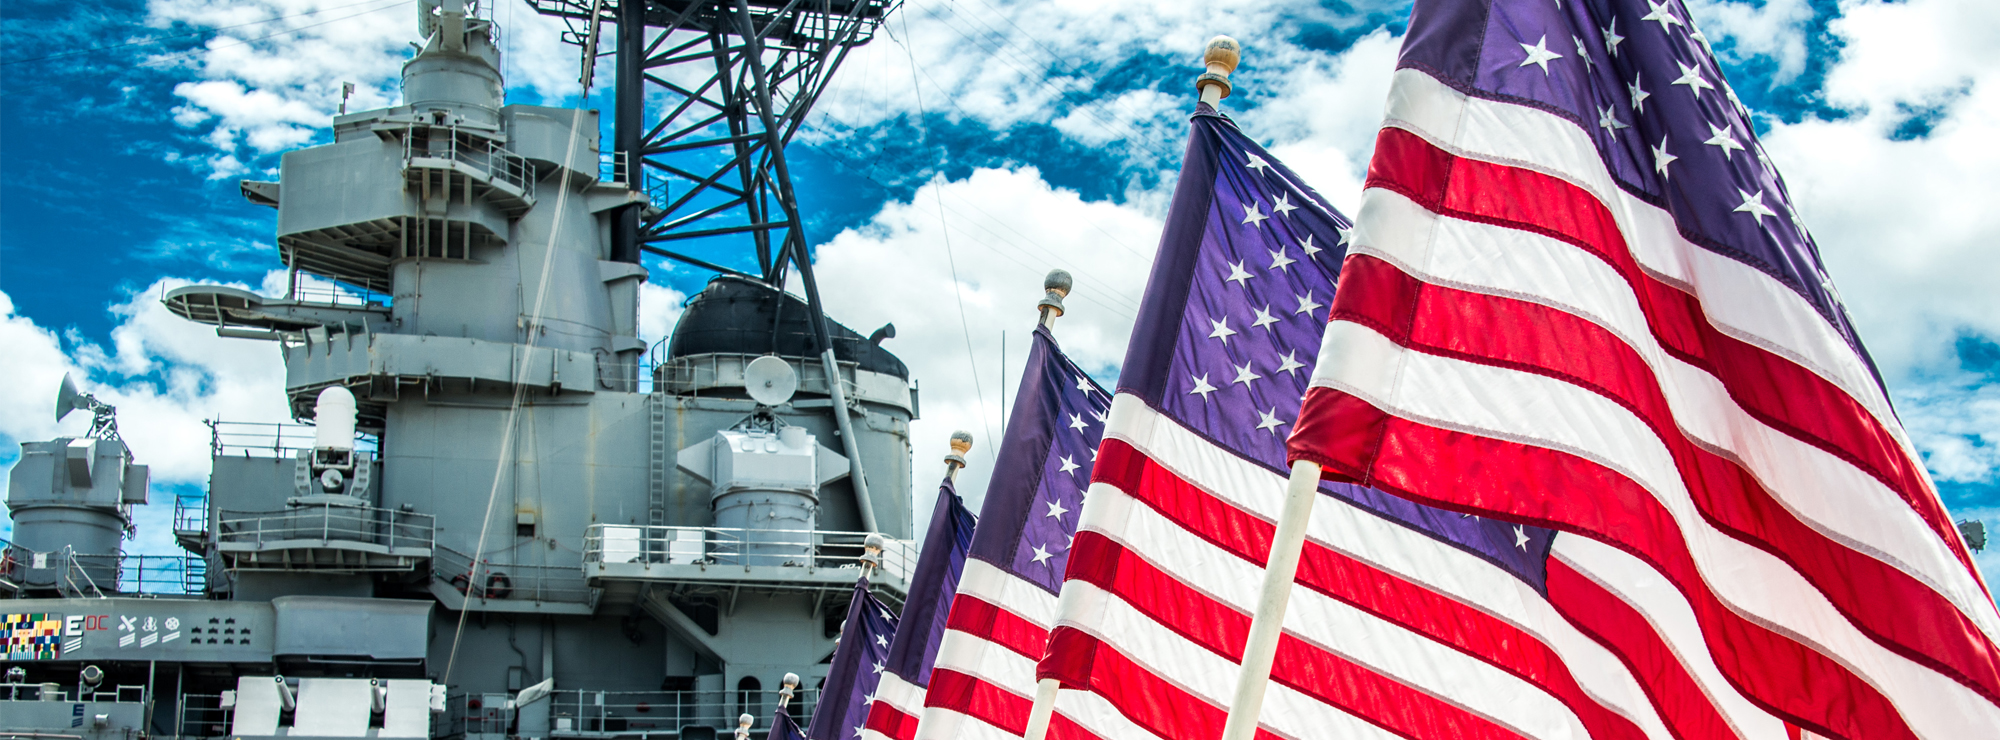 American flags in front of a battleship bridge